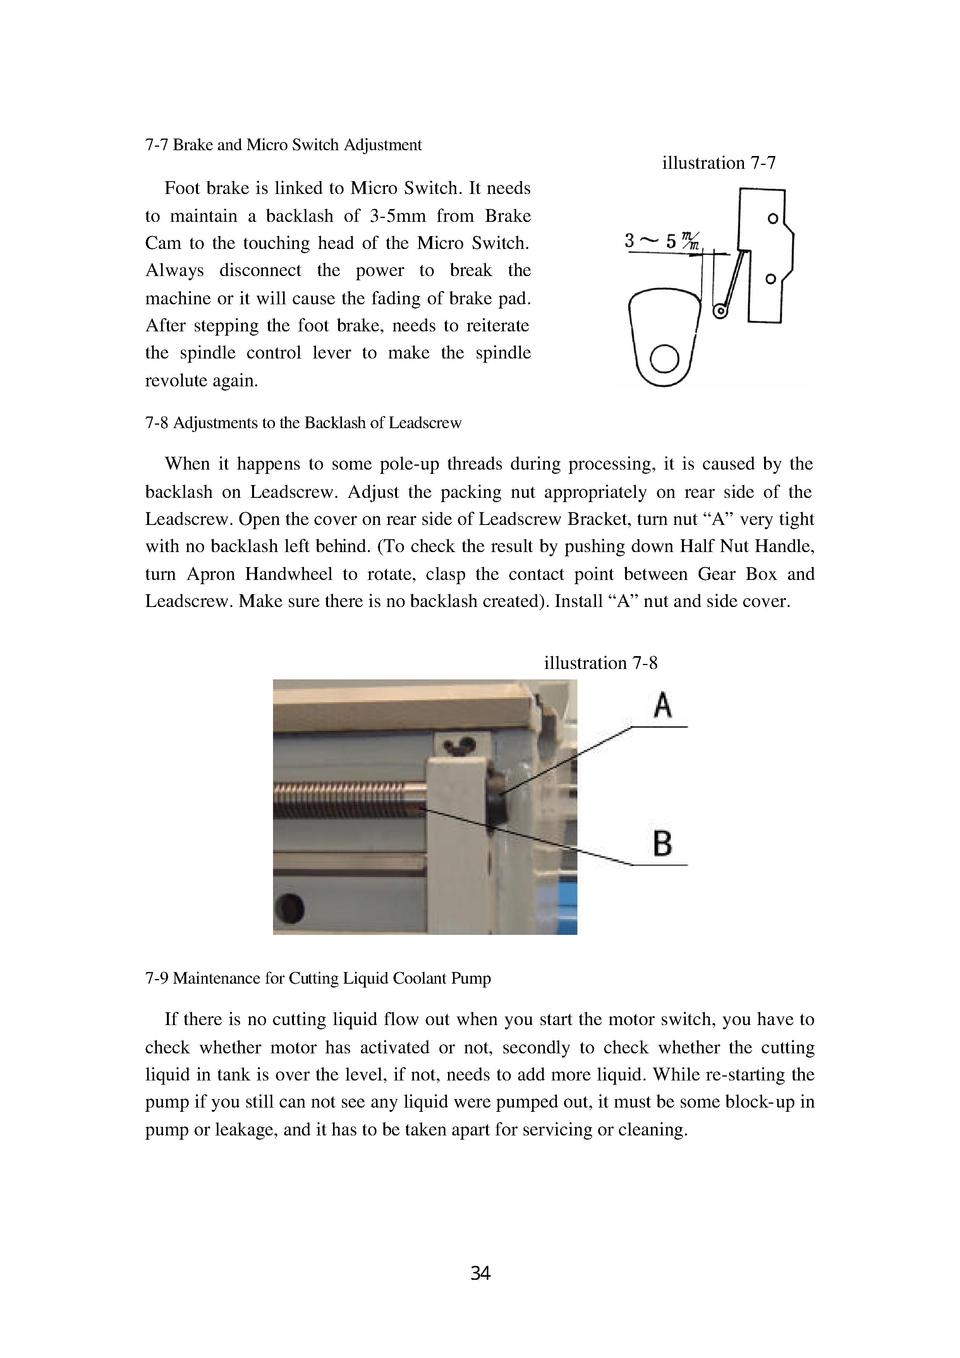 7-7 Brake and Micro Switch Adjustment  illustration 7-7 Foot brake is linked to Micro Switch. It needs to maintain a backl...